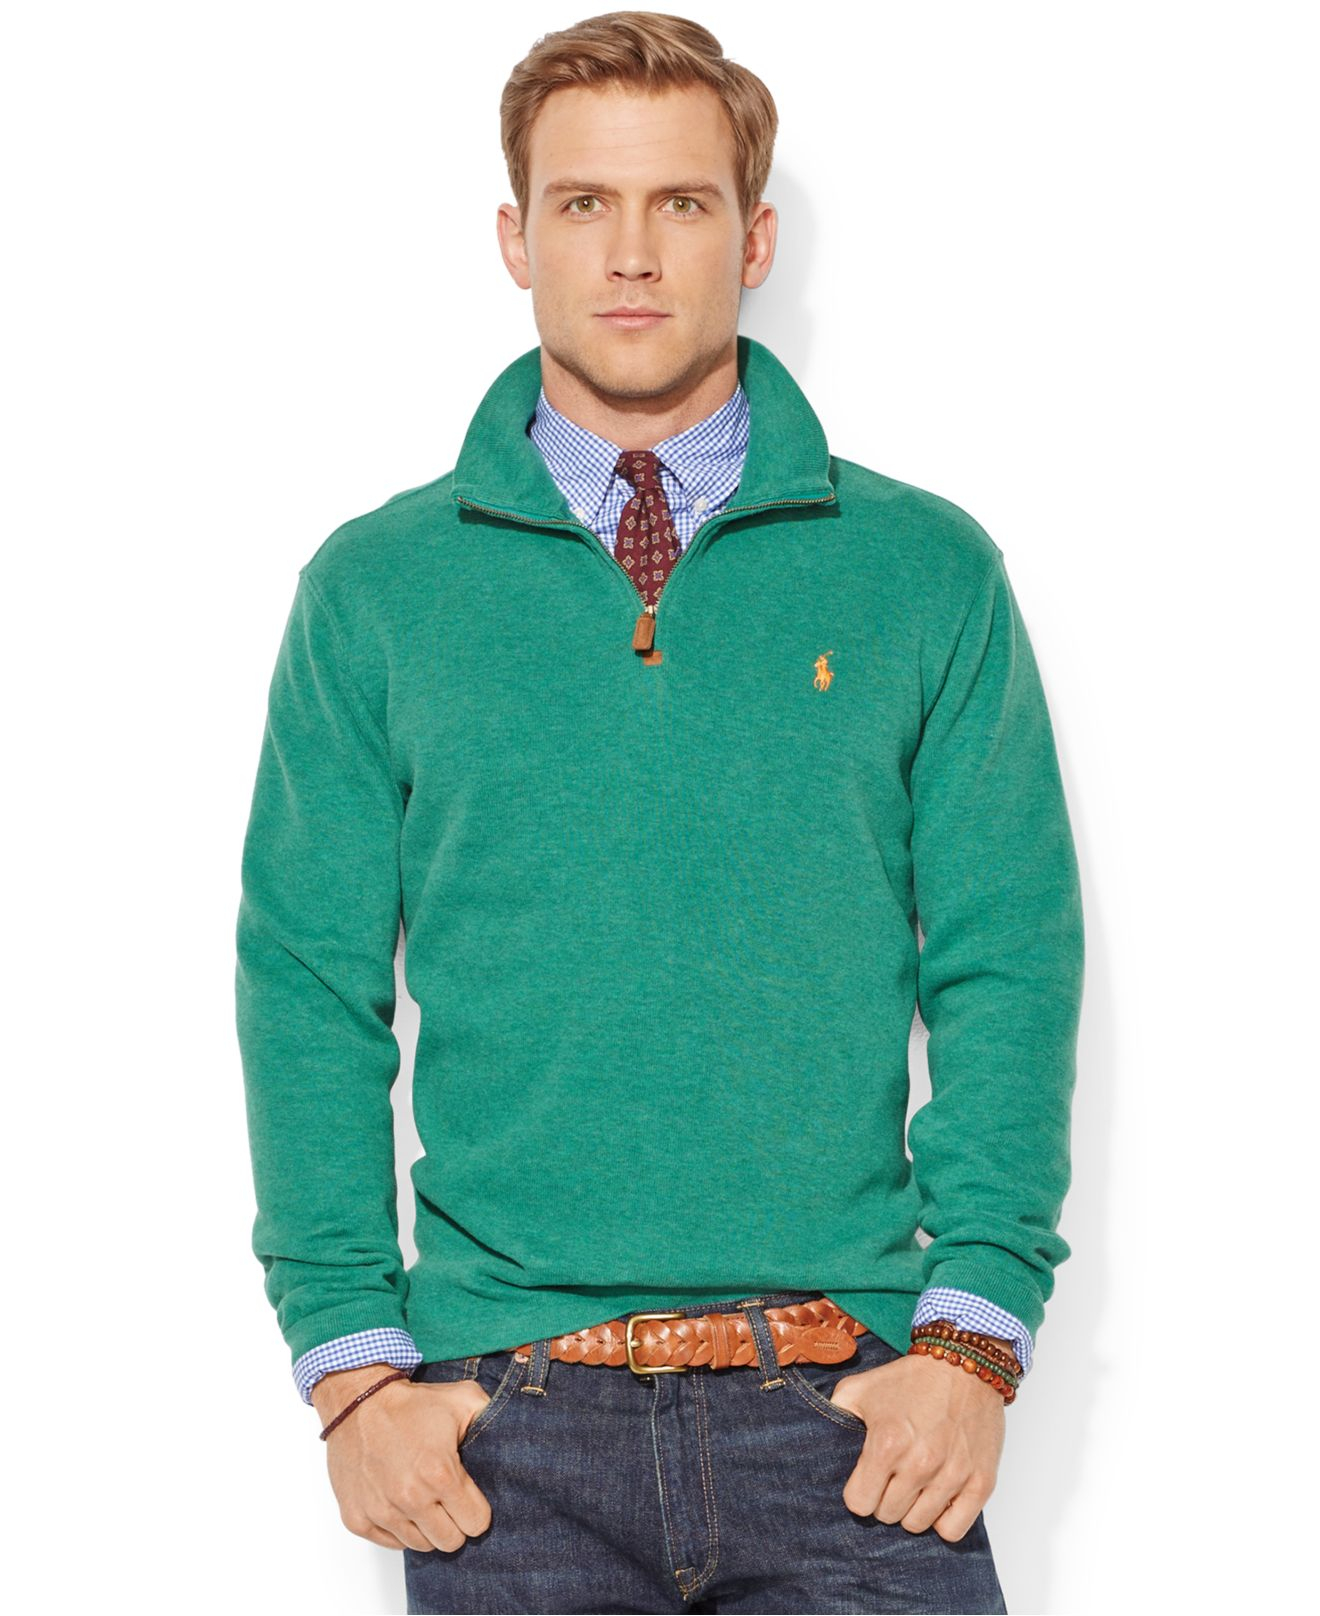 polo ralph lauren green french rib half zip pullover sweater for men. Black Bedroom Furniture Sets. Home Design Ideas